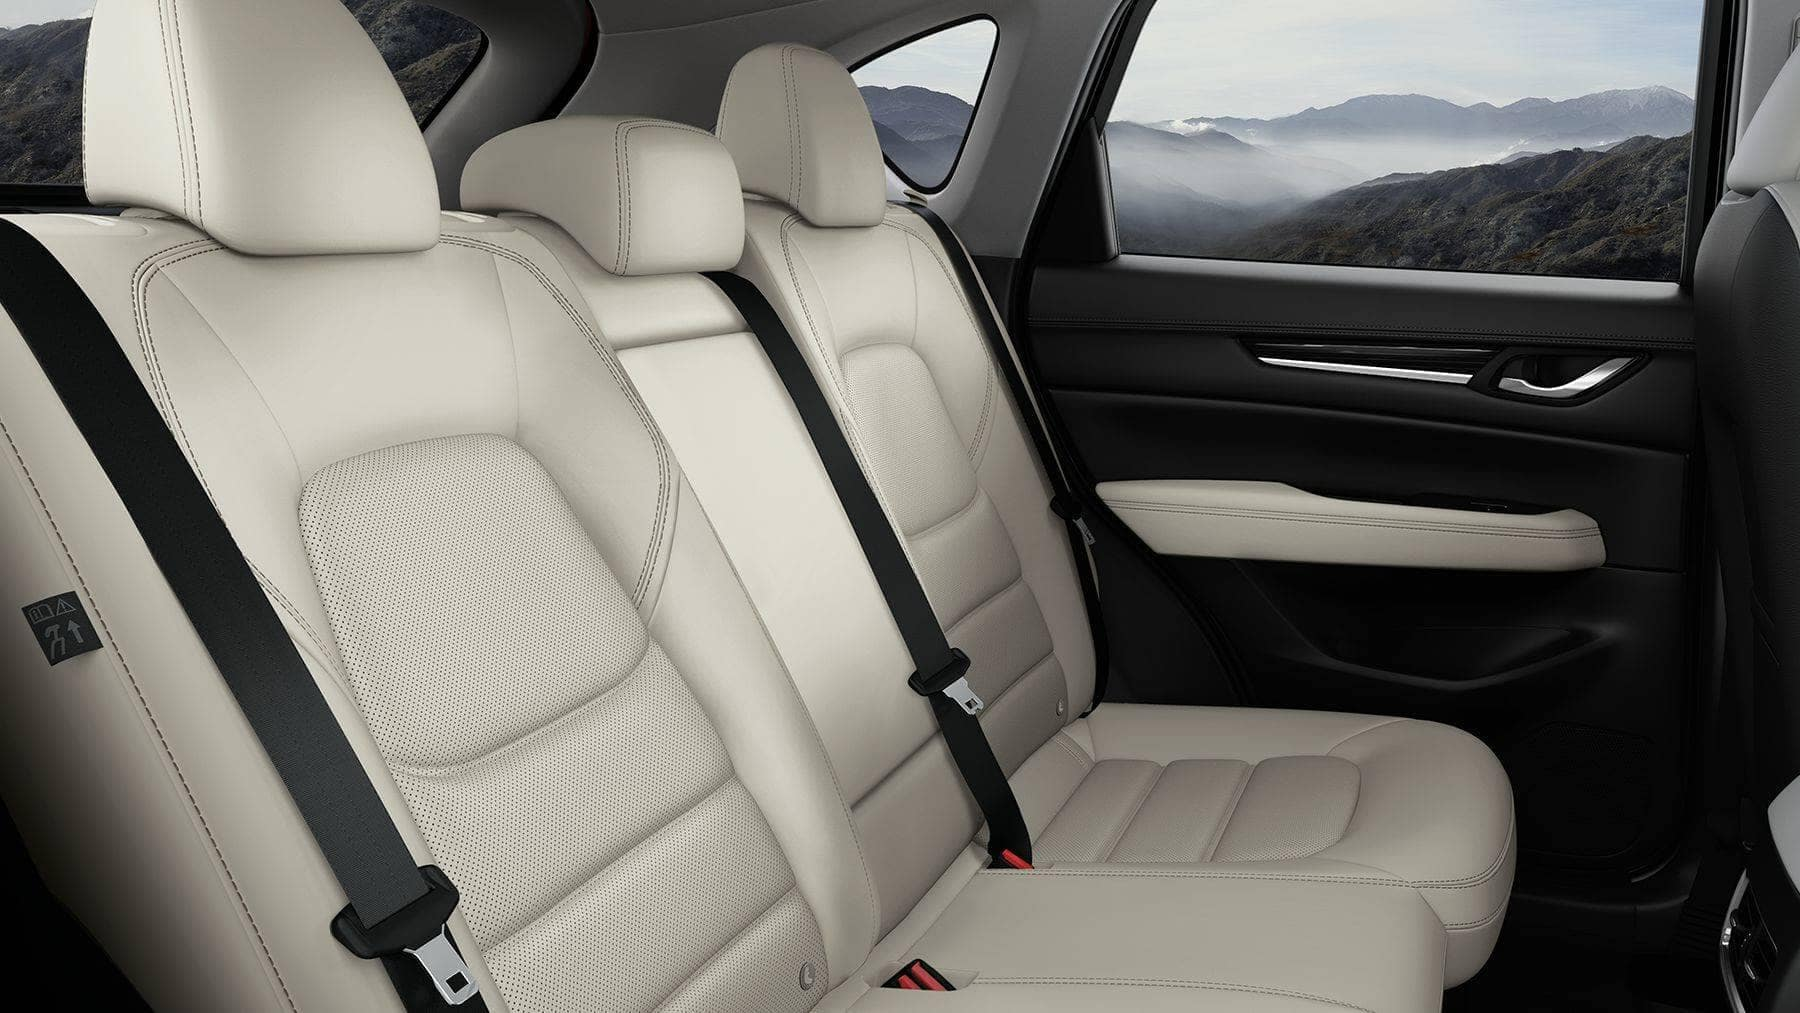 2018 Mazda CX-5 Interior Rear Seats